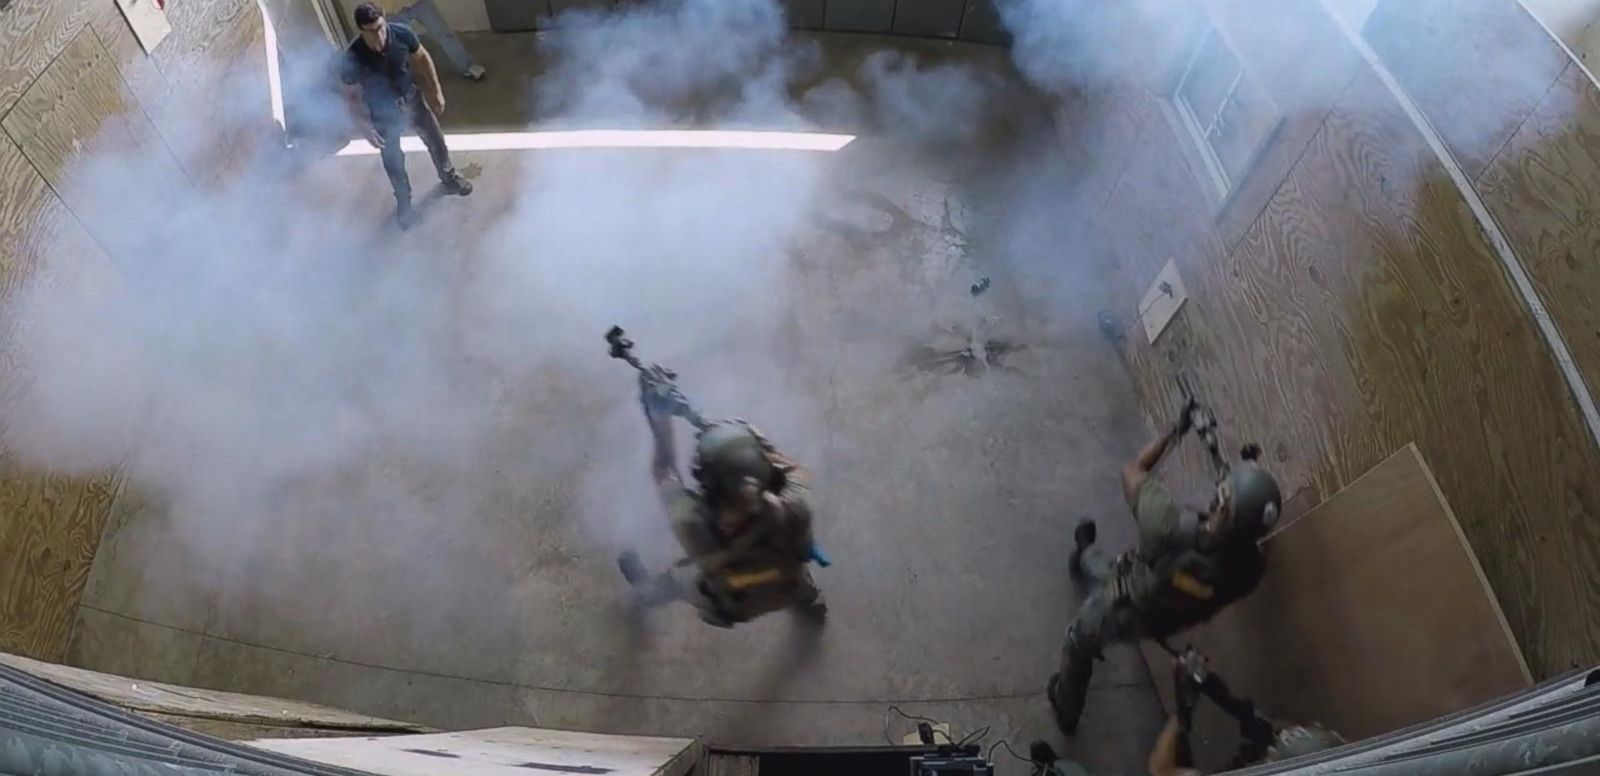 VIDEO: Watch What Happens During a Swat Team Raid Simulation